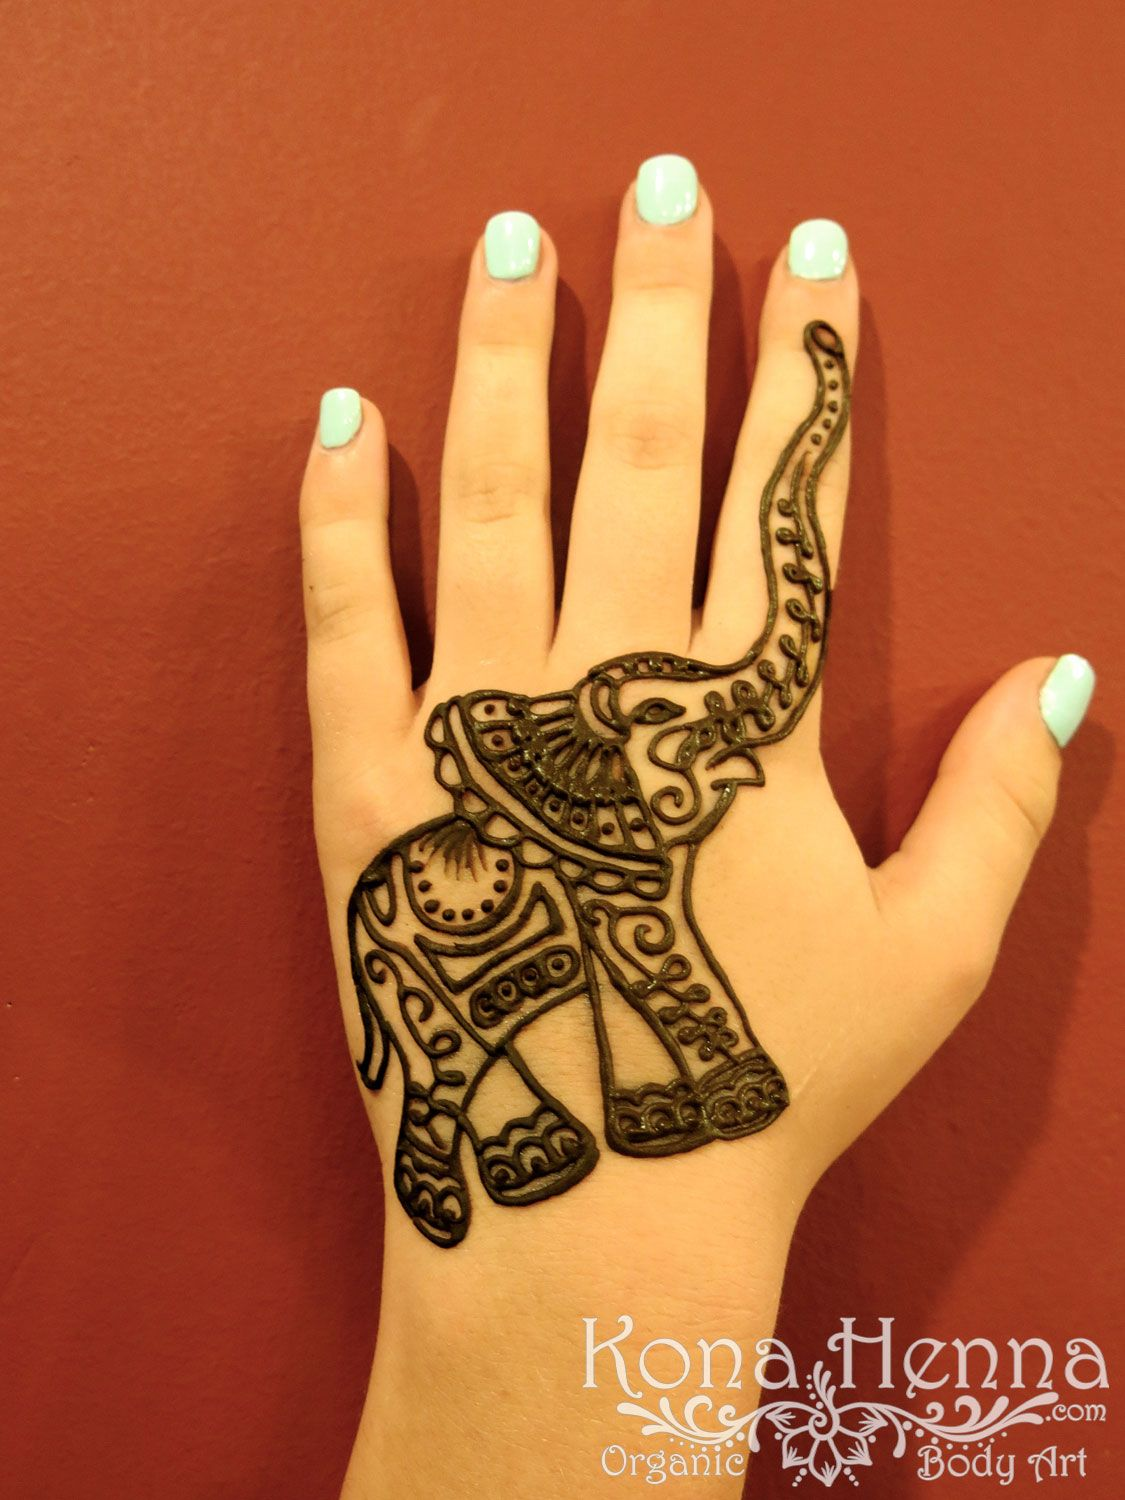 kona henna studio elephant hand henna by kona henna pinterest hennas studio and tattoo. Black Bedroom Furniture Sets. Home Design Ideas